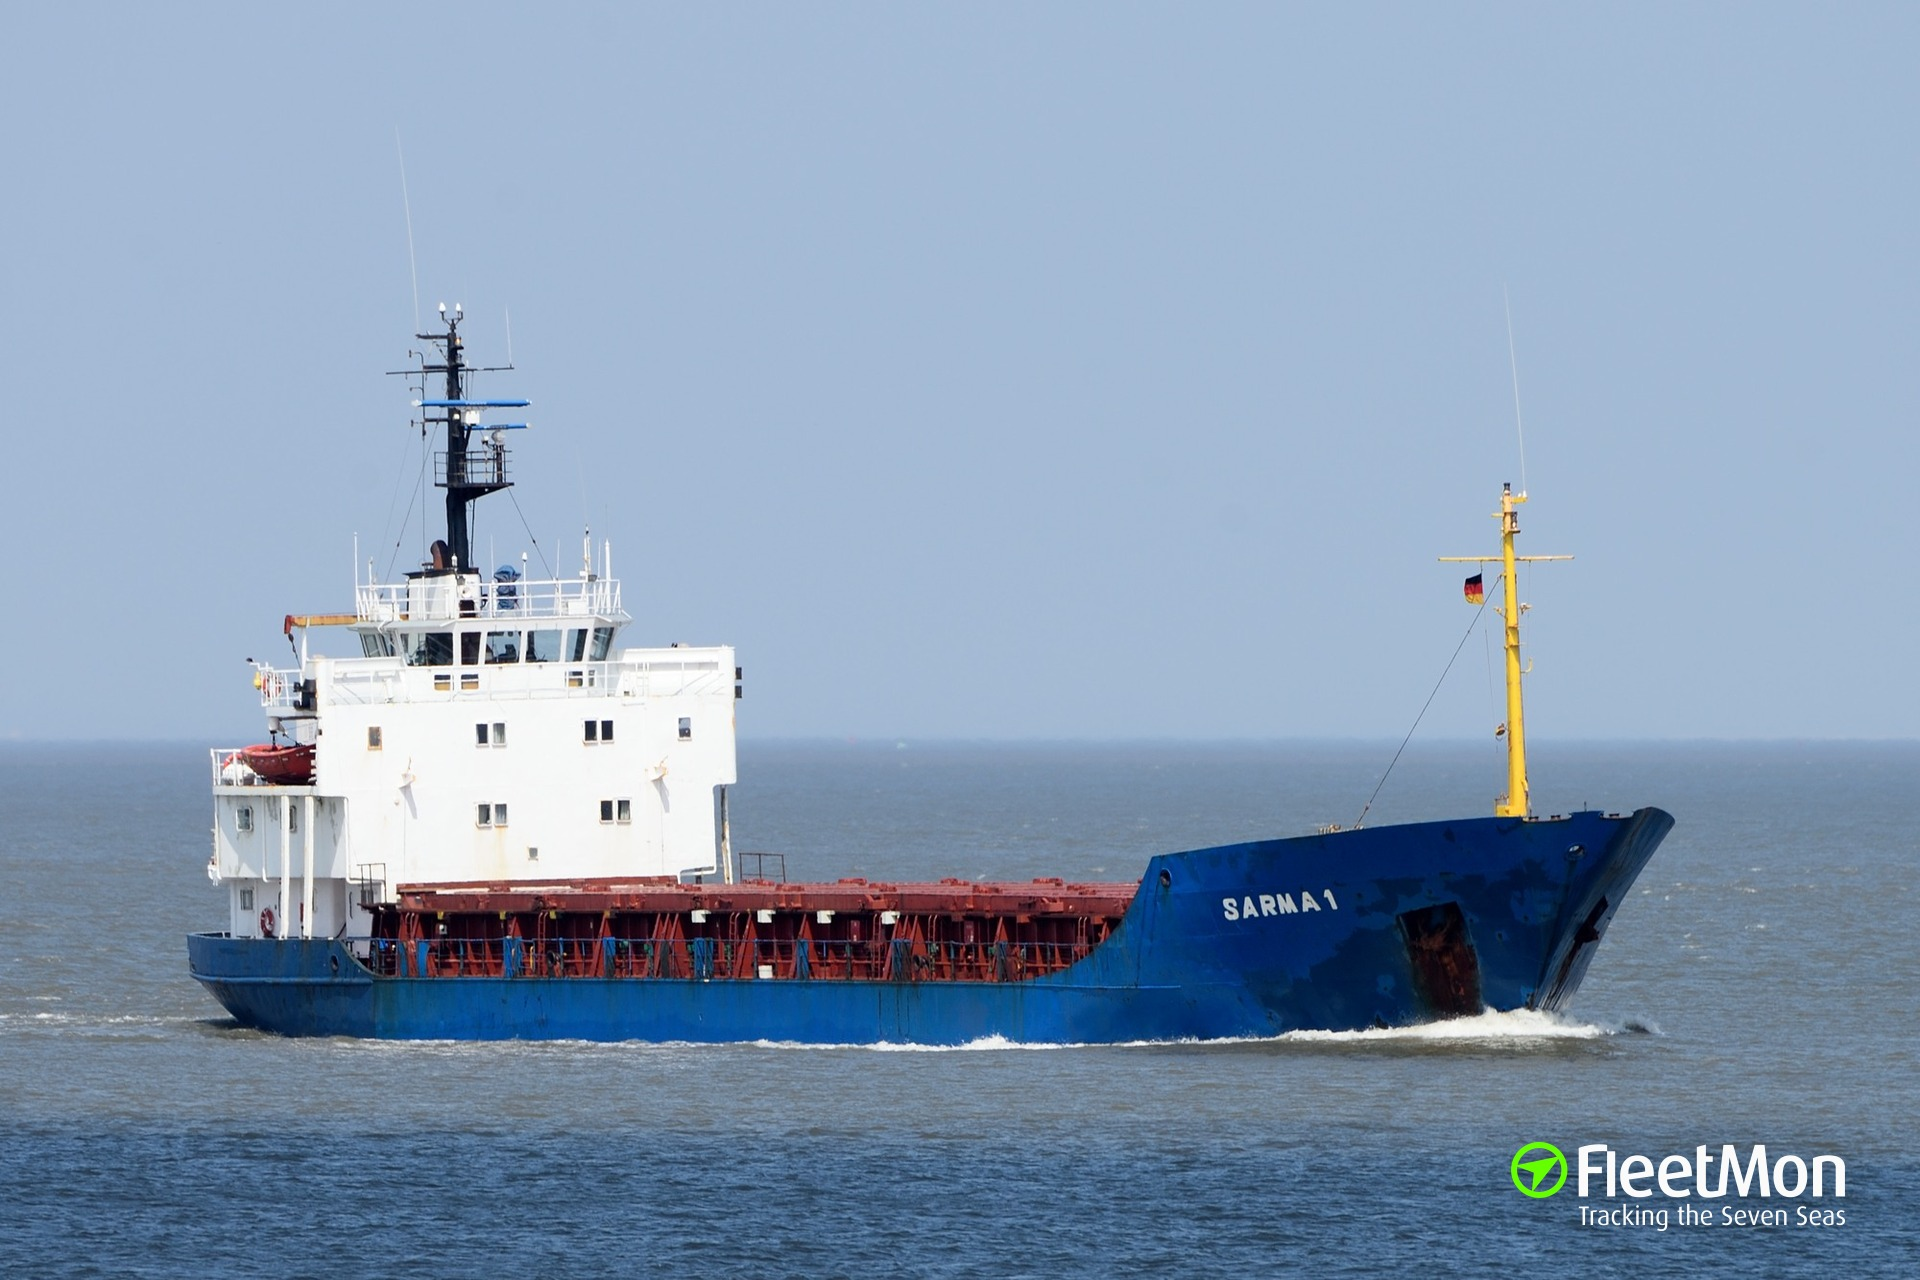 Freighter Sarma 1 under way to Ventspils escorted by tug MTS Victory